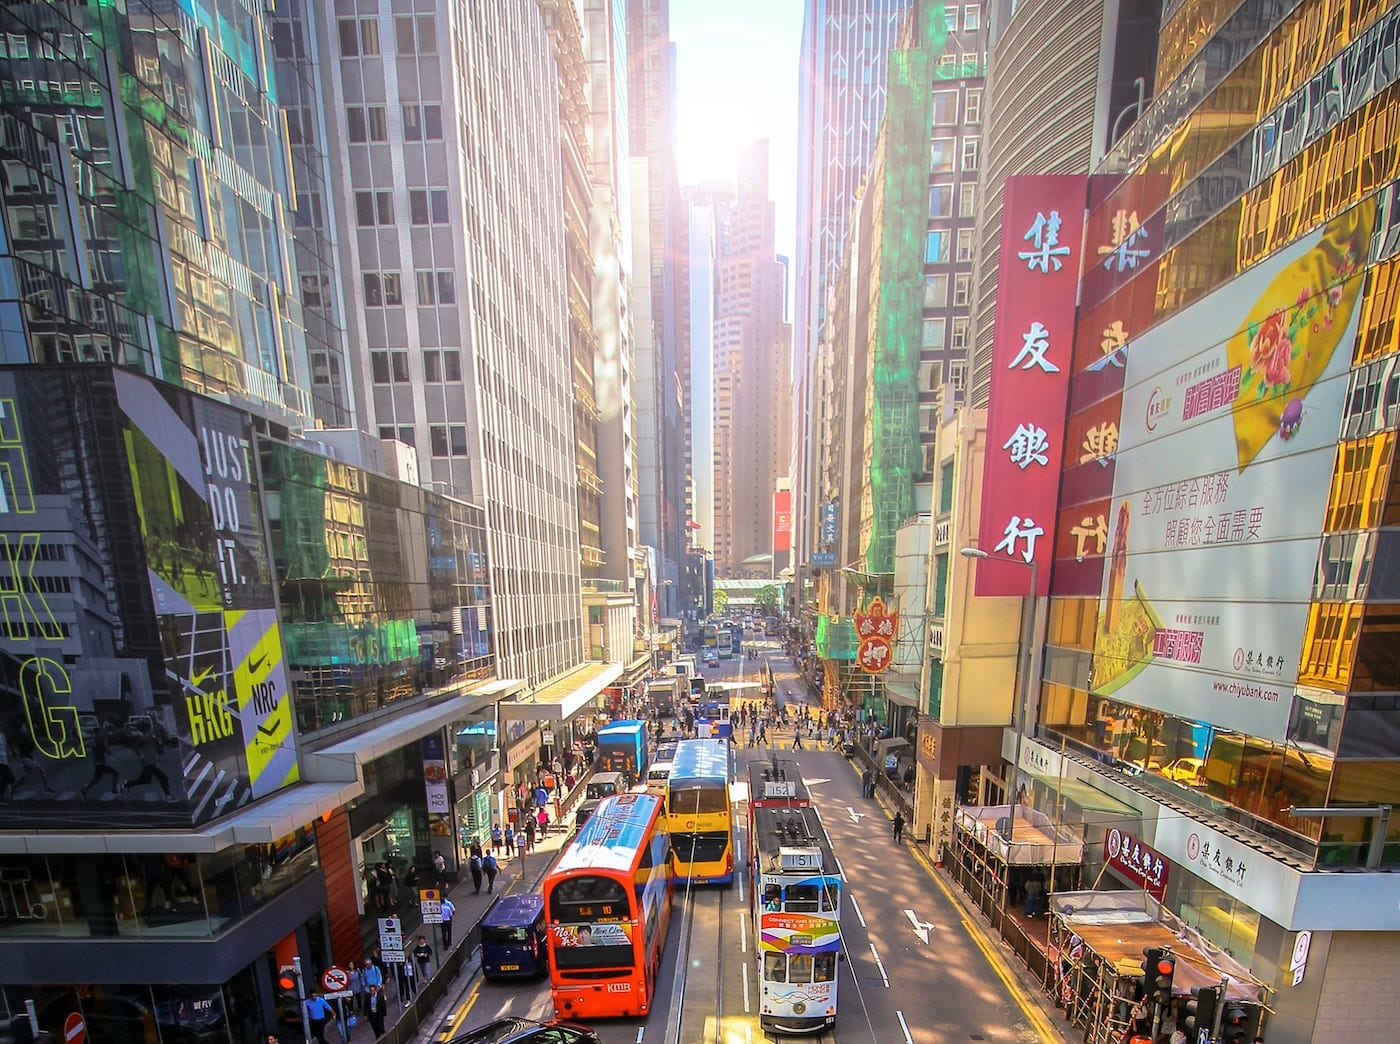 Hong Kong road aerial view with buildings, buses, and trams